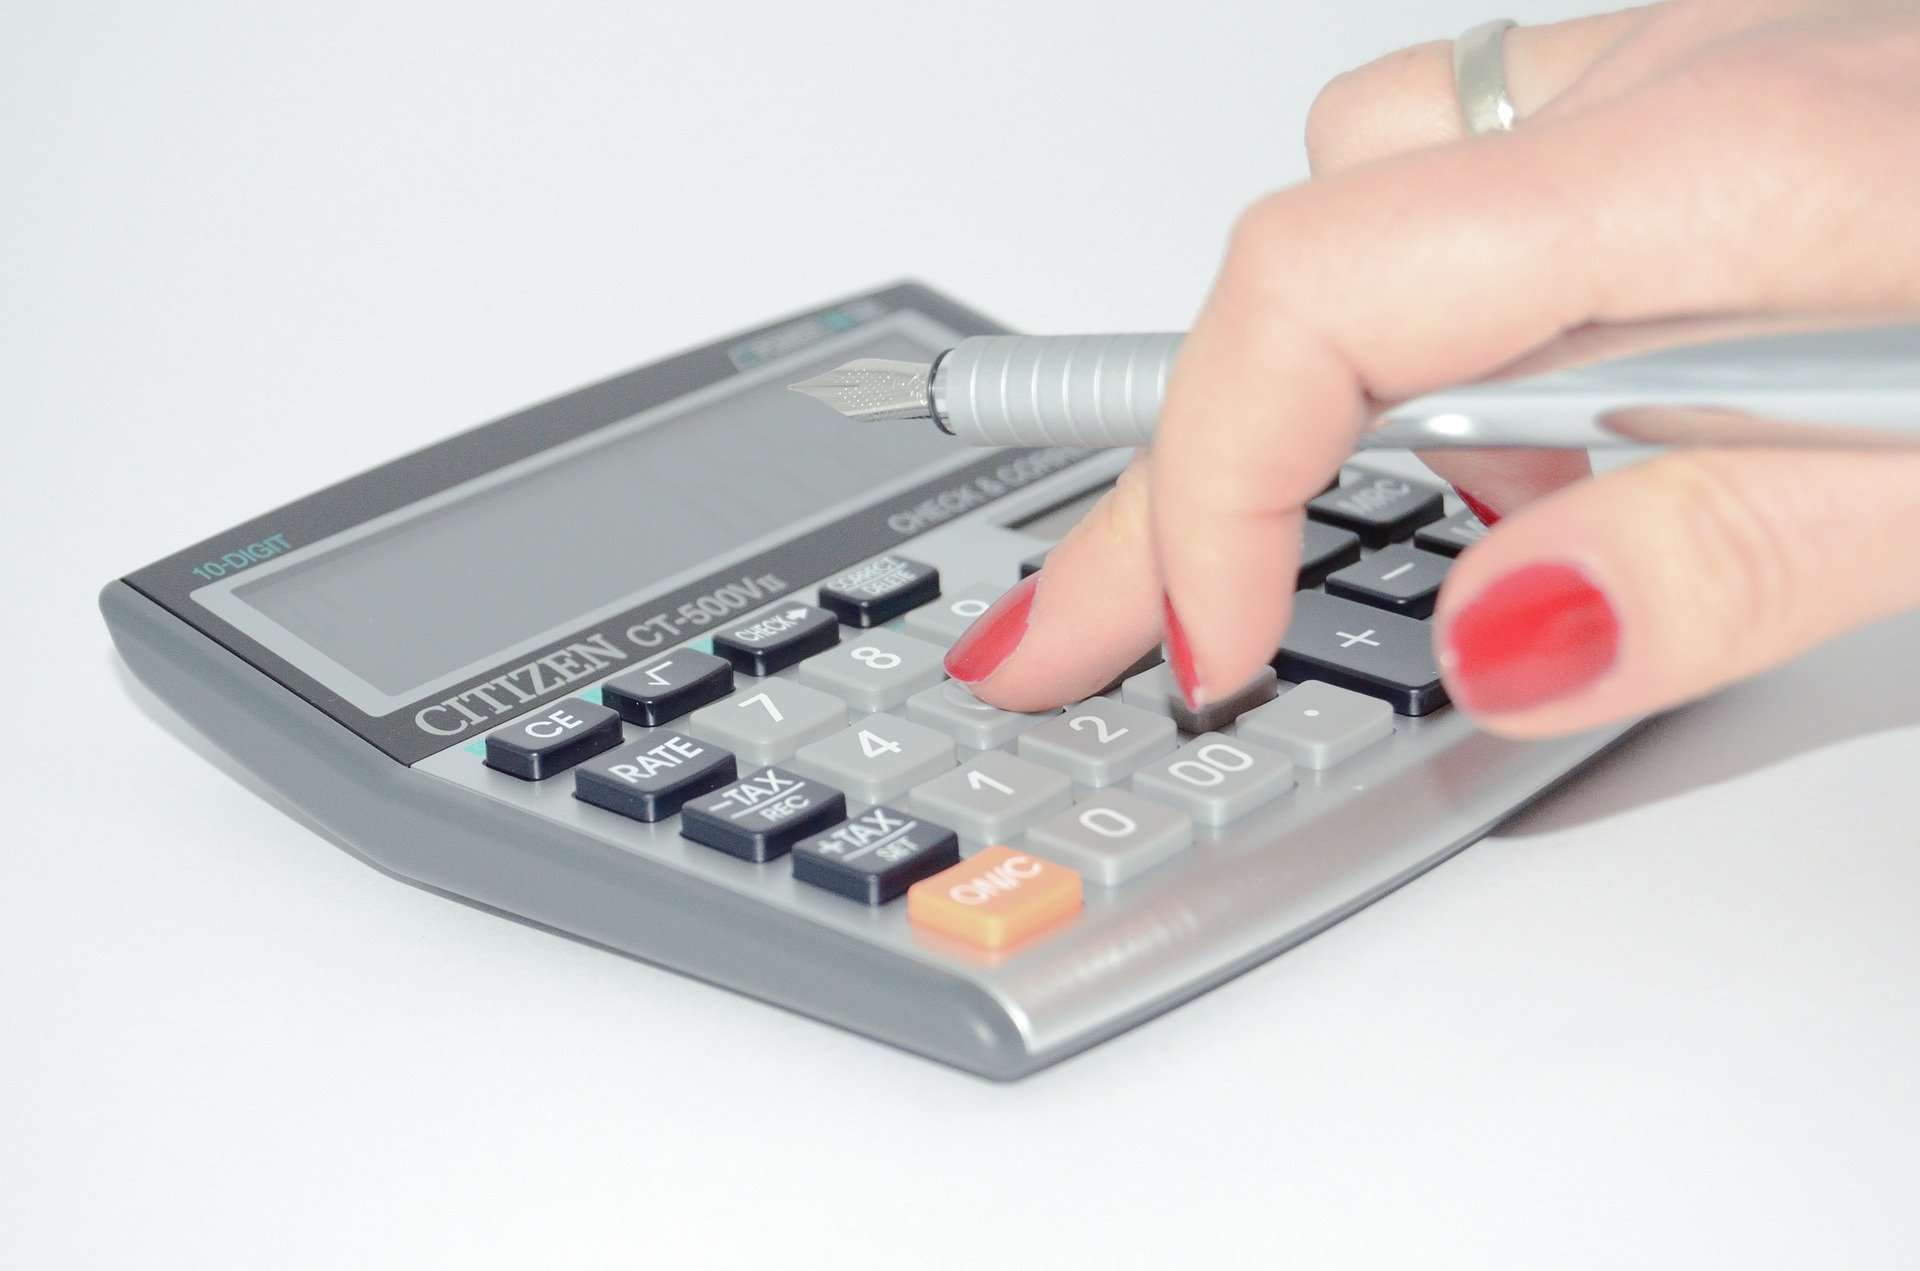 Woman with red fingernails typing on a calculator.